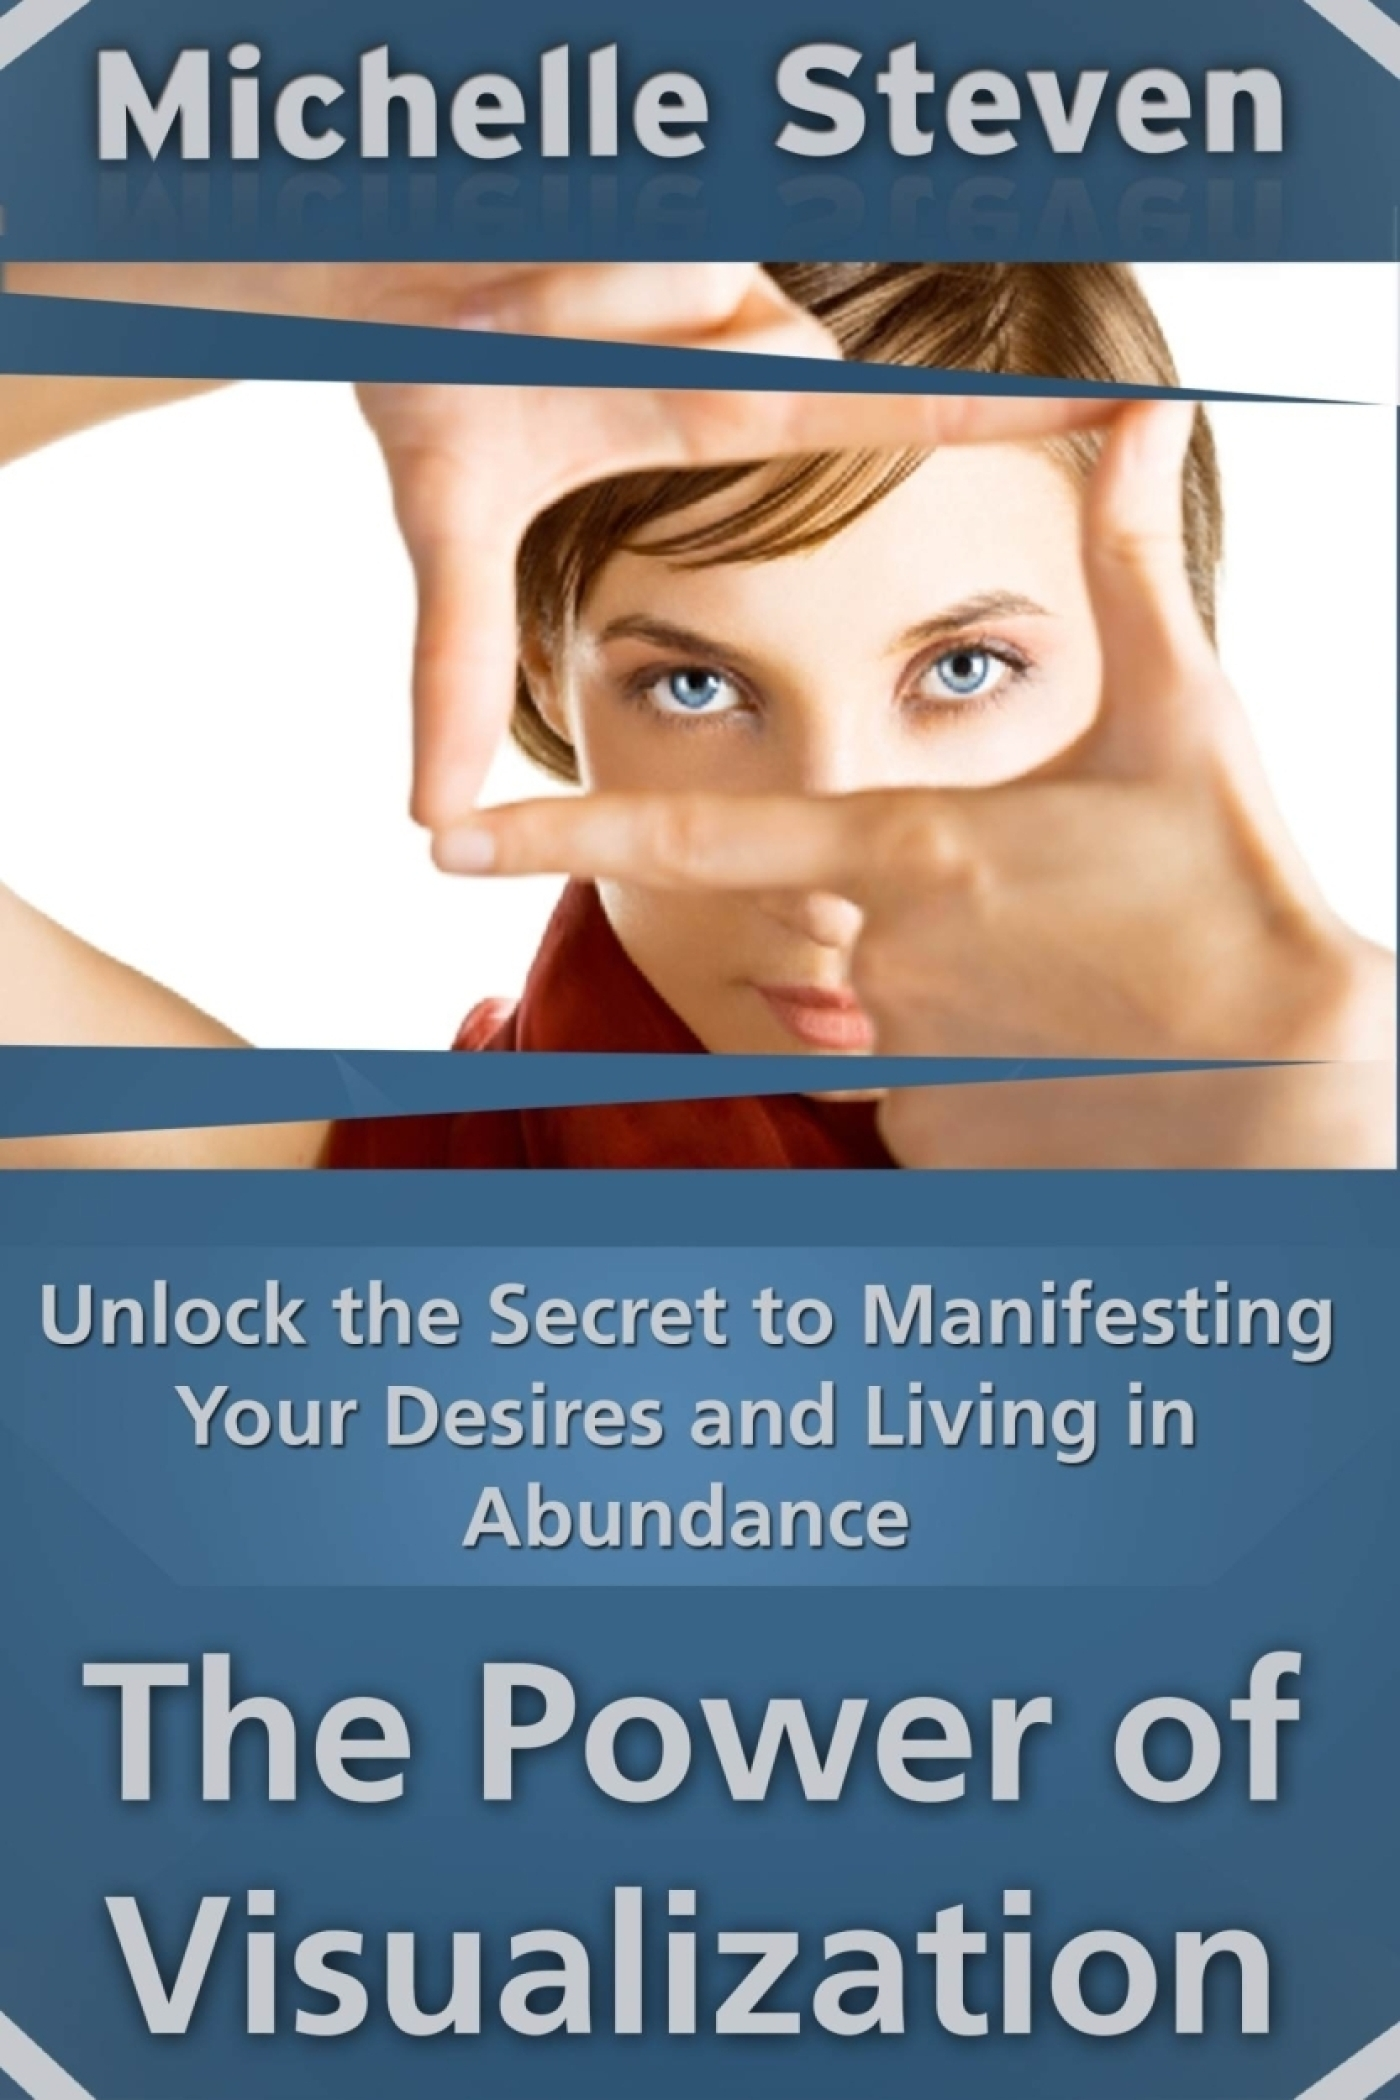 Bookstore Unlock The Secret To Manifesting Your Desires And Living In Abundance